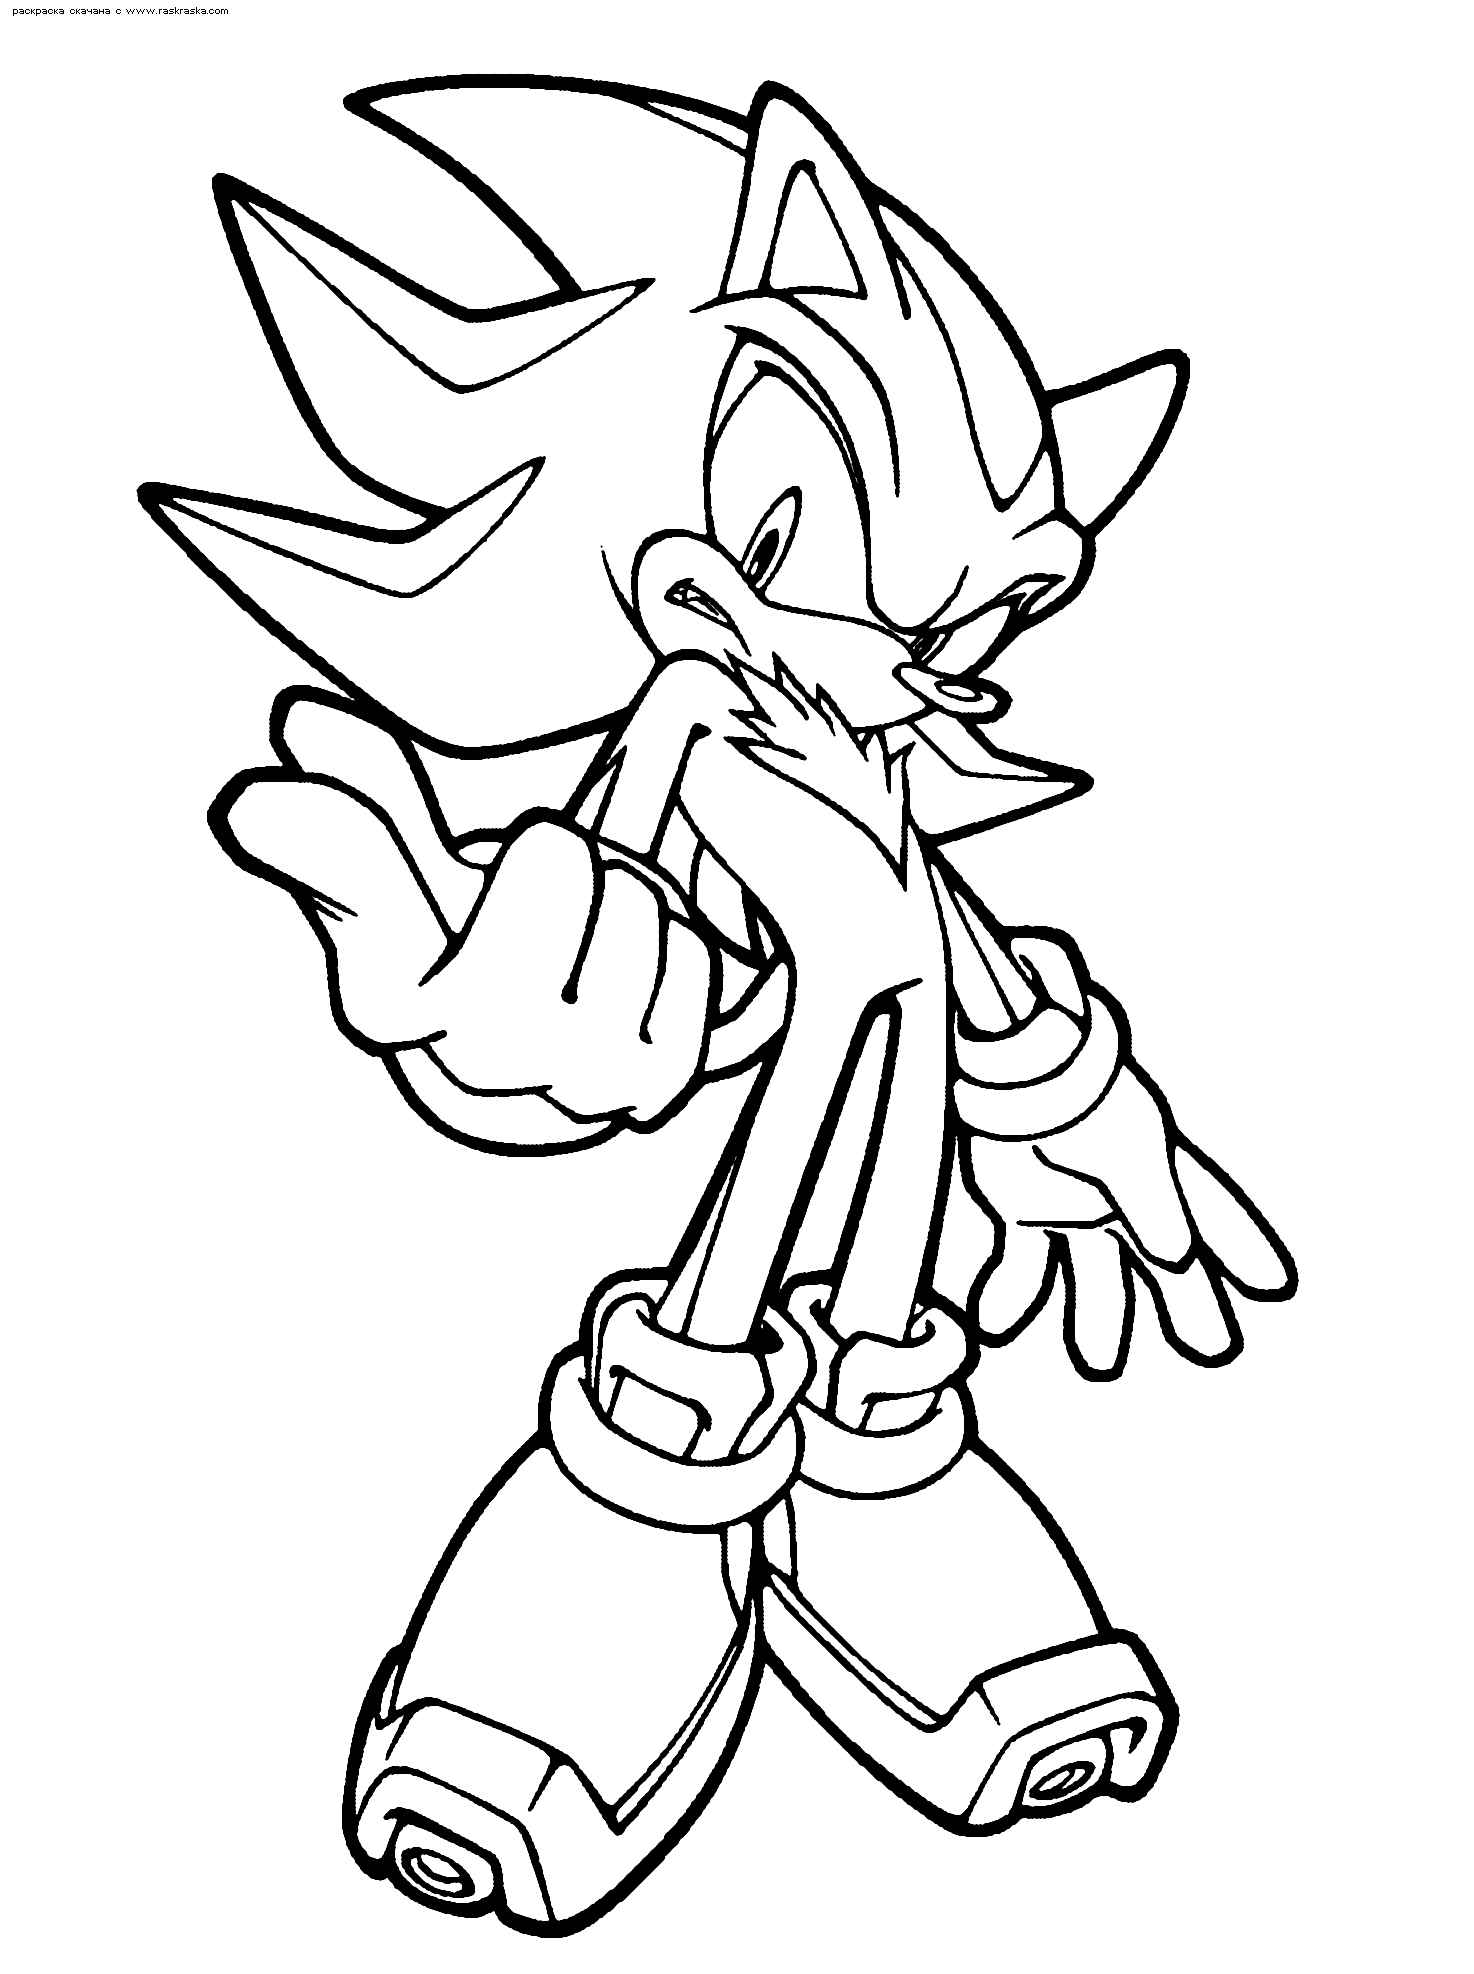 Sonic The Hedgehog Coloring Pages Knuckles - Coloring ...